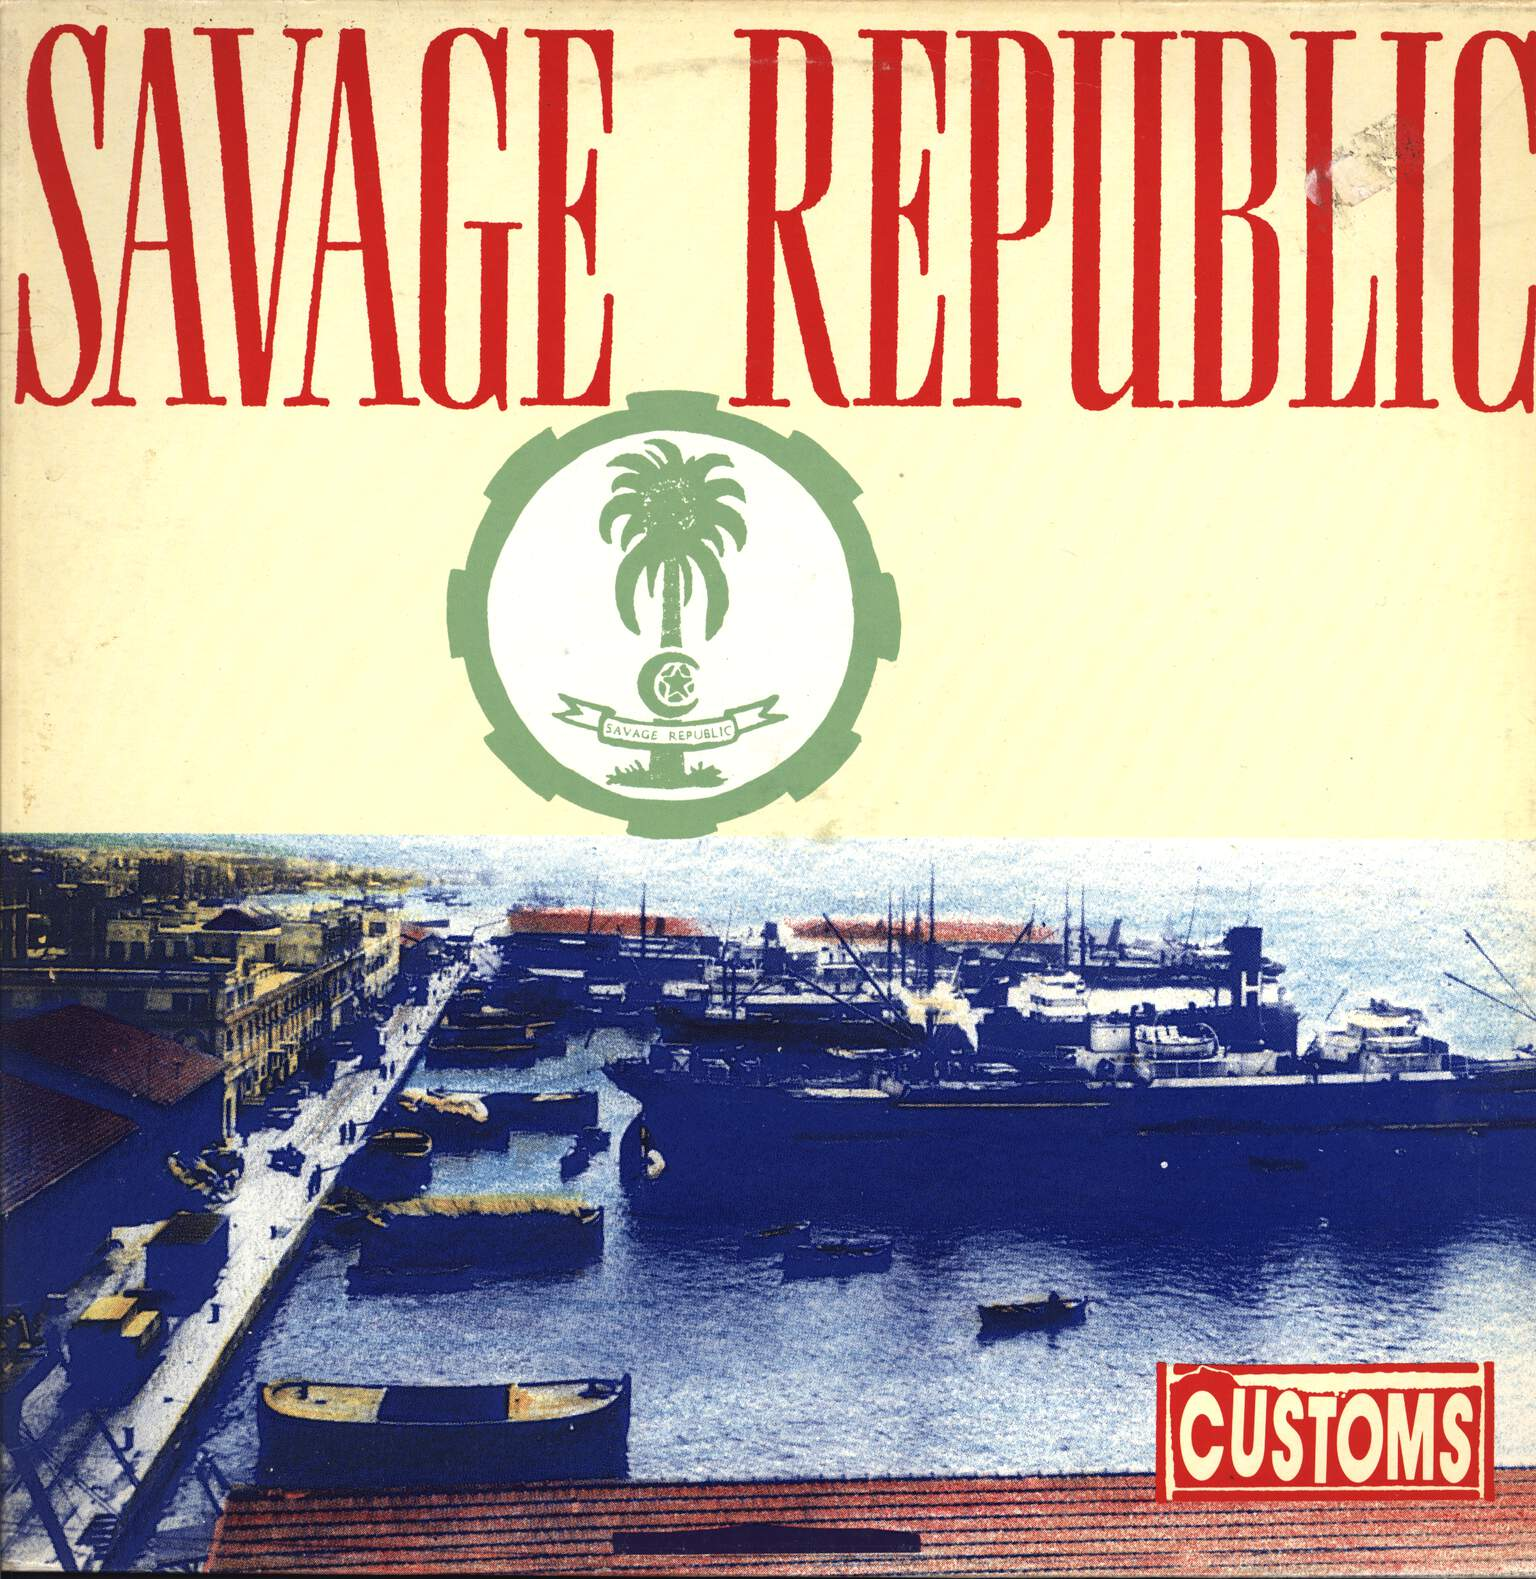 Savage Republic: Customs, LP (Vinyl)